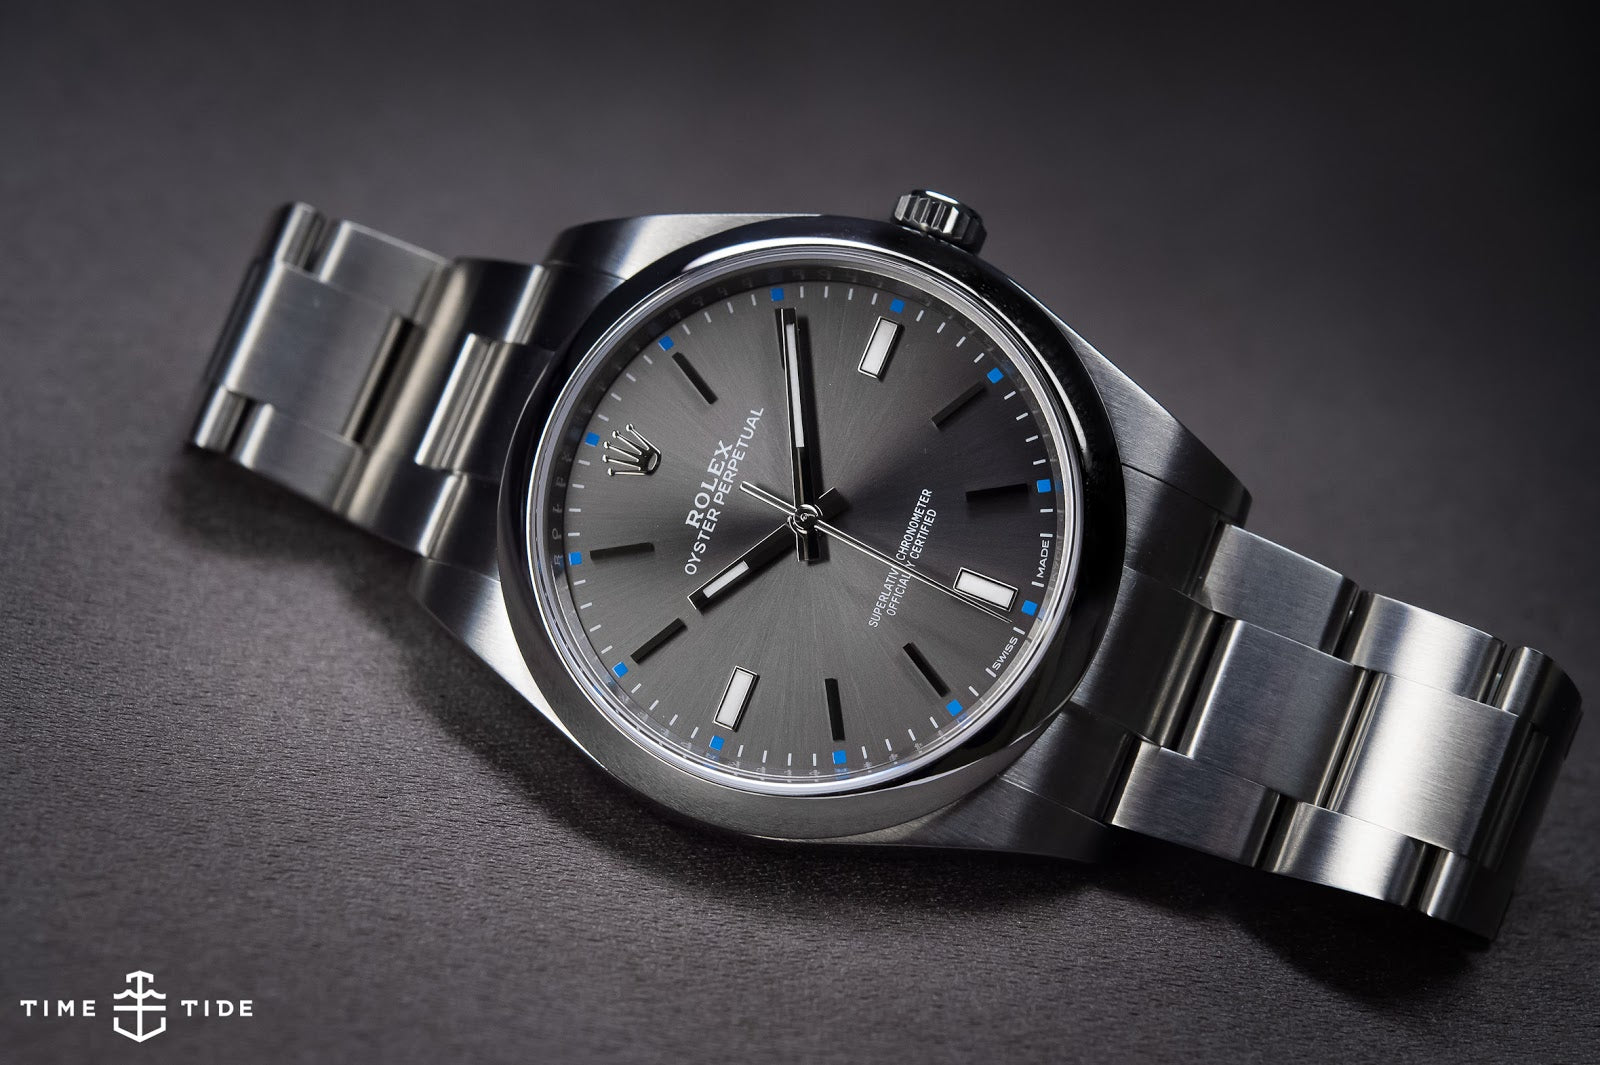 The Oyster Perpetual 39 is the Perfect Rolex Model No Longer in Production